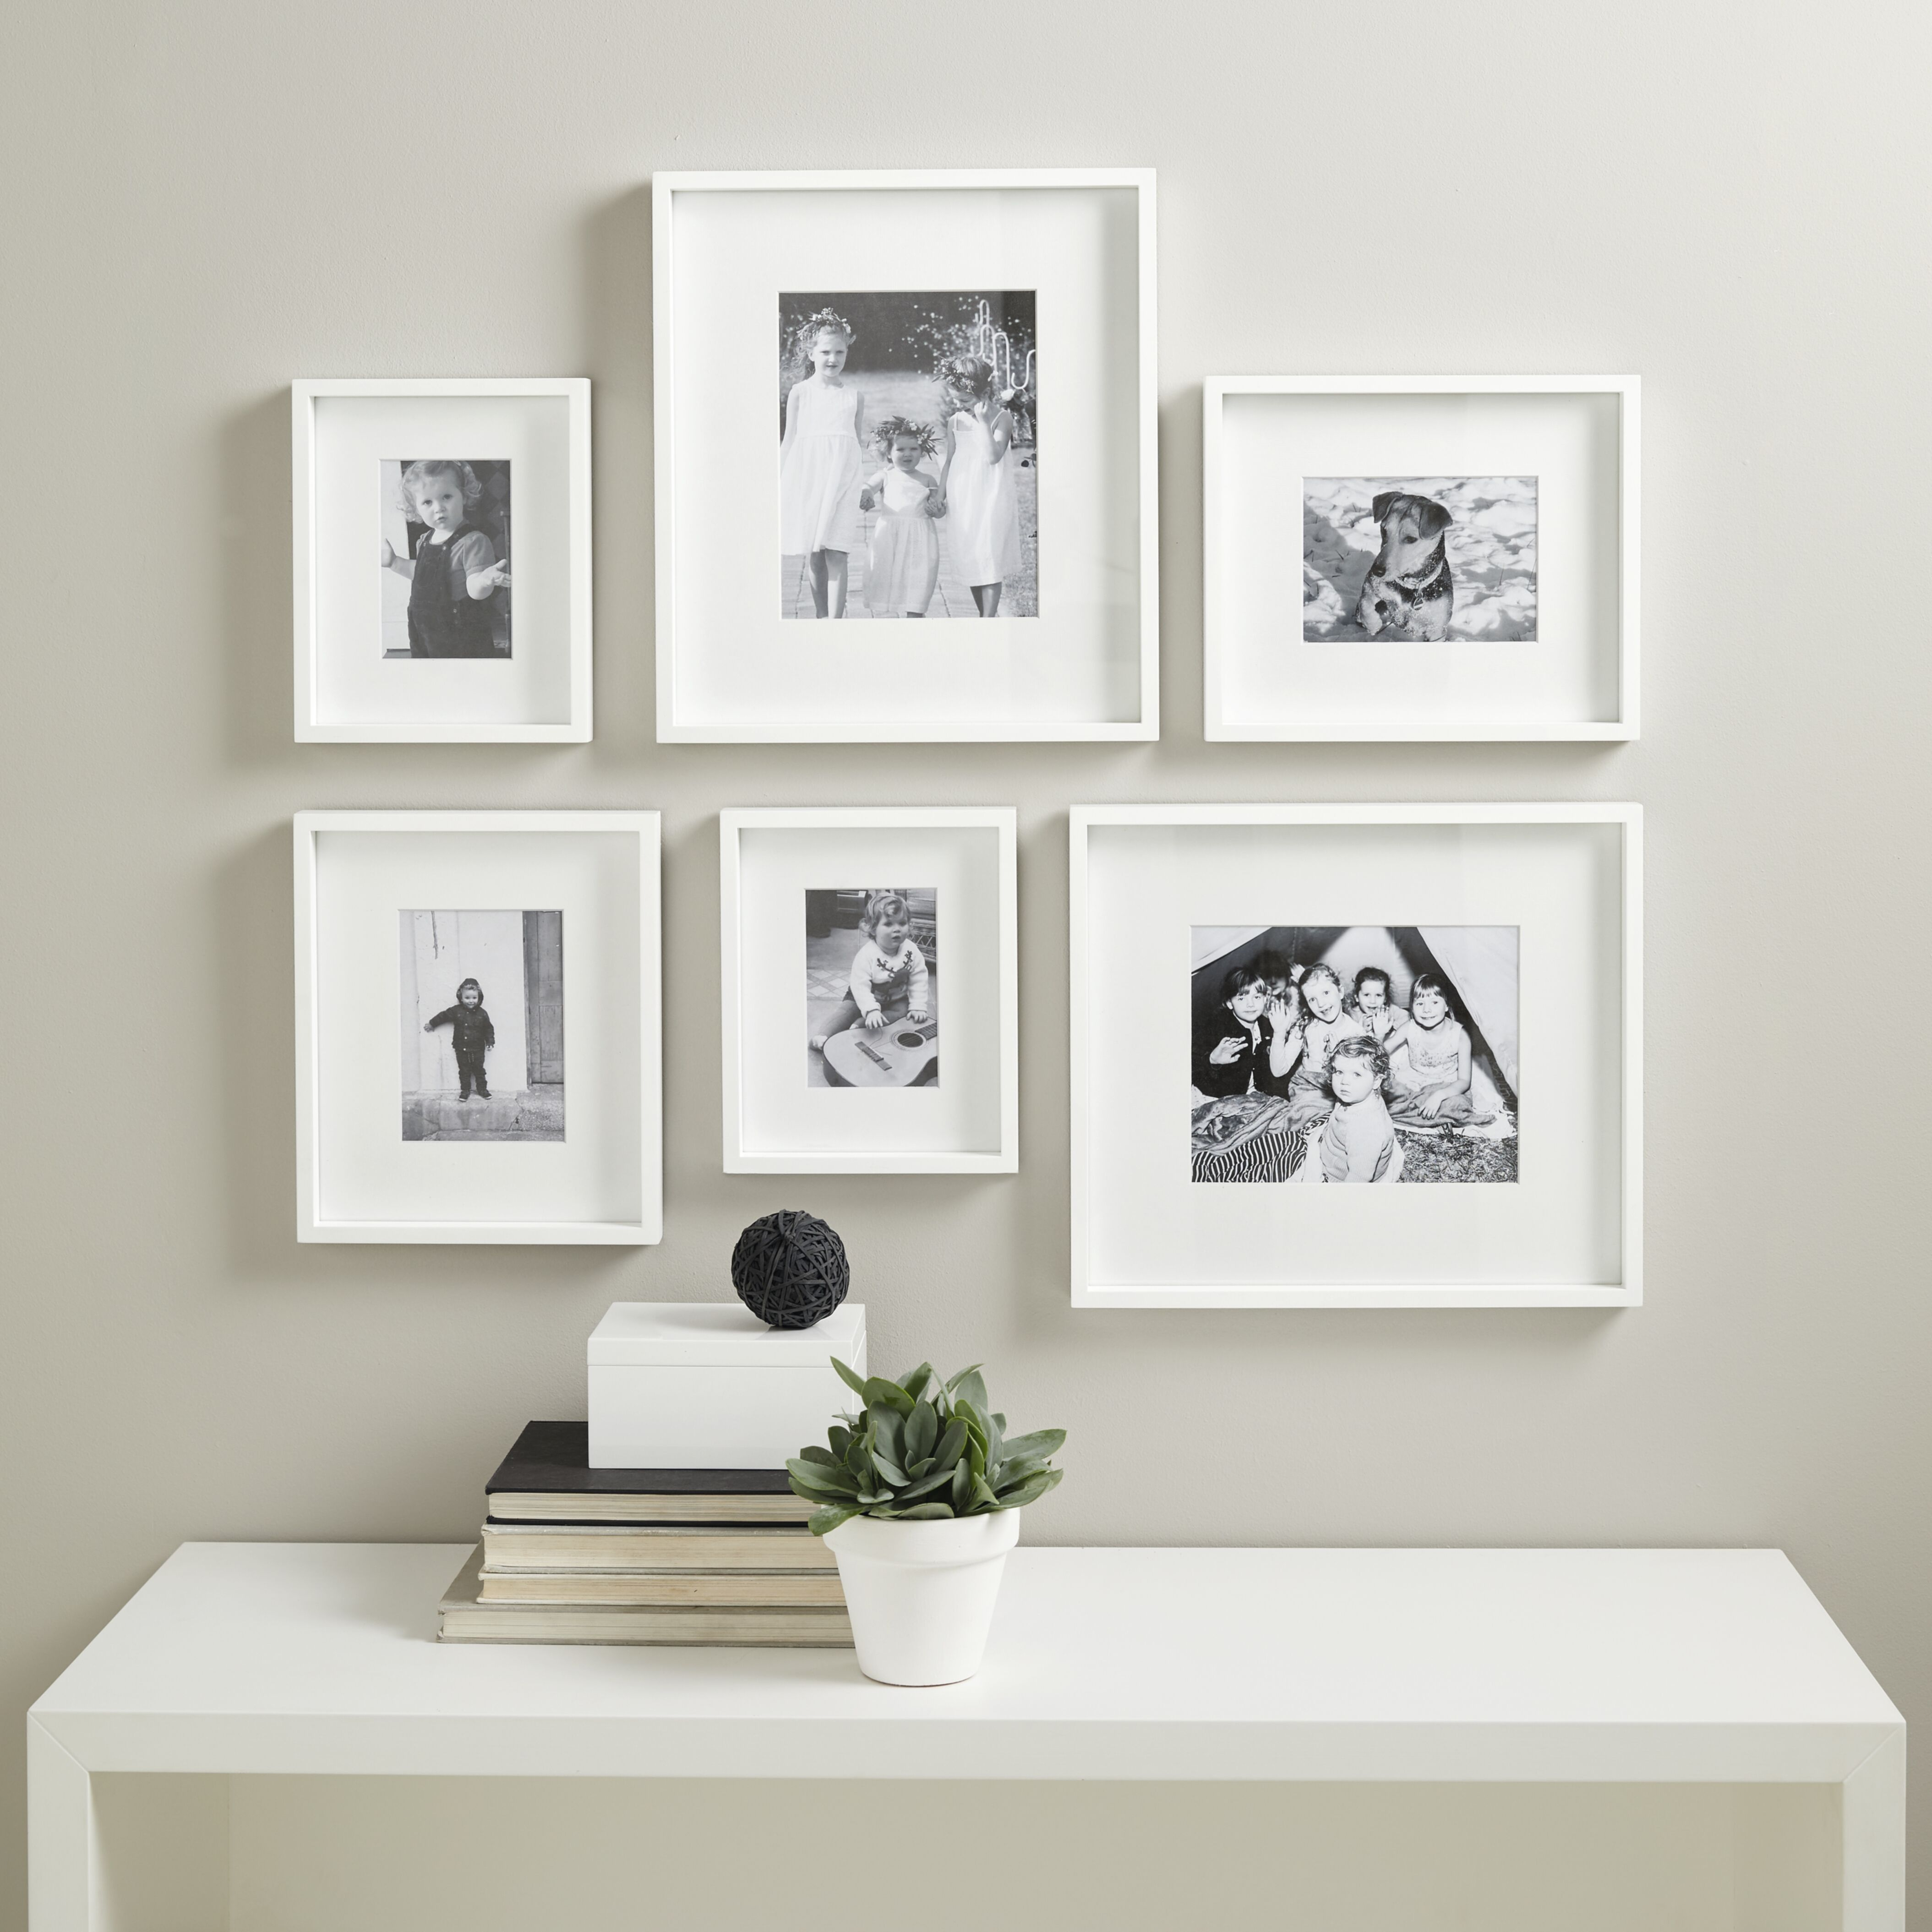 Picture Gallery Wall Small Photo Frame Set Photo Frames The White Company Picture Gallery Wall Gallery Wall Design Frames On Wall